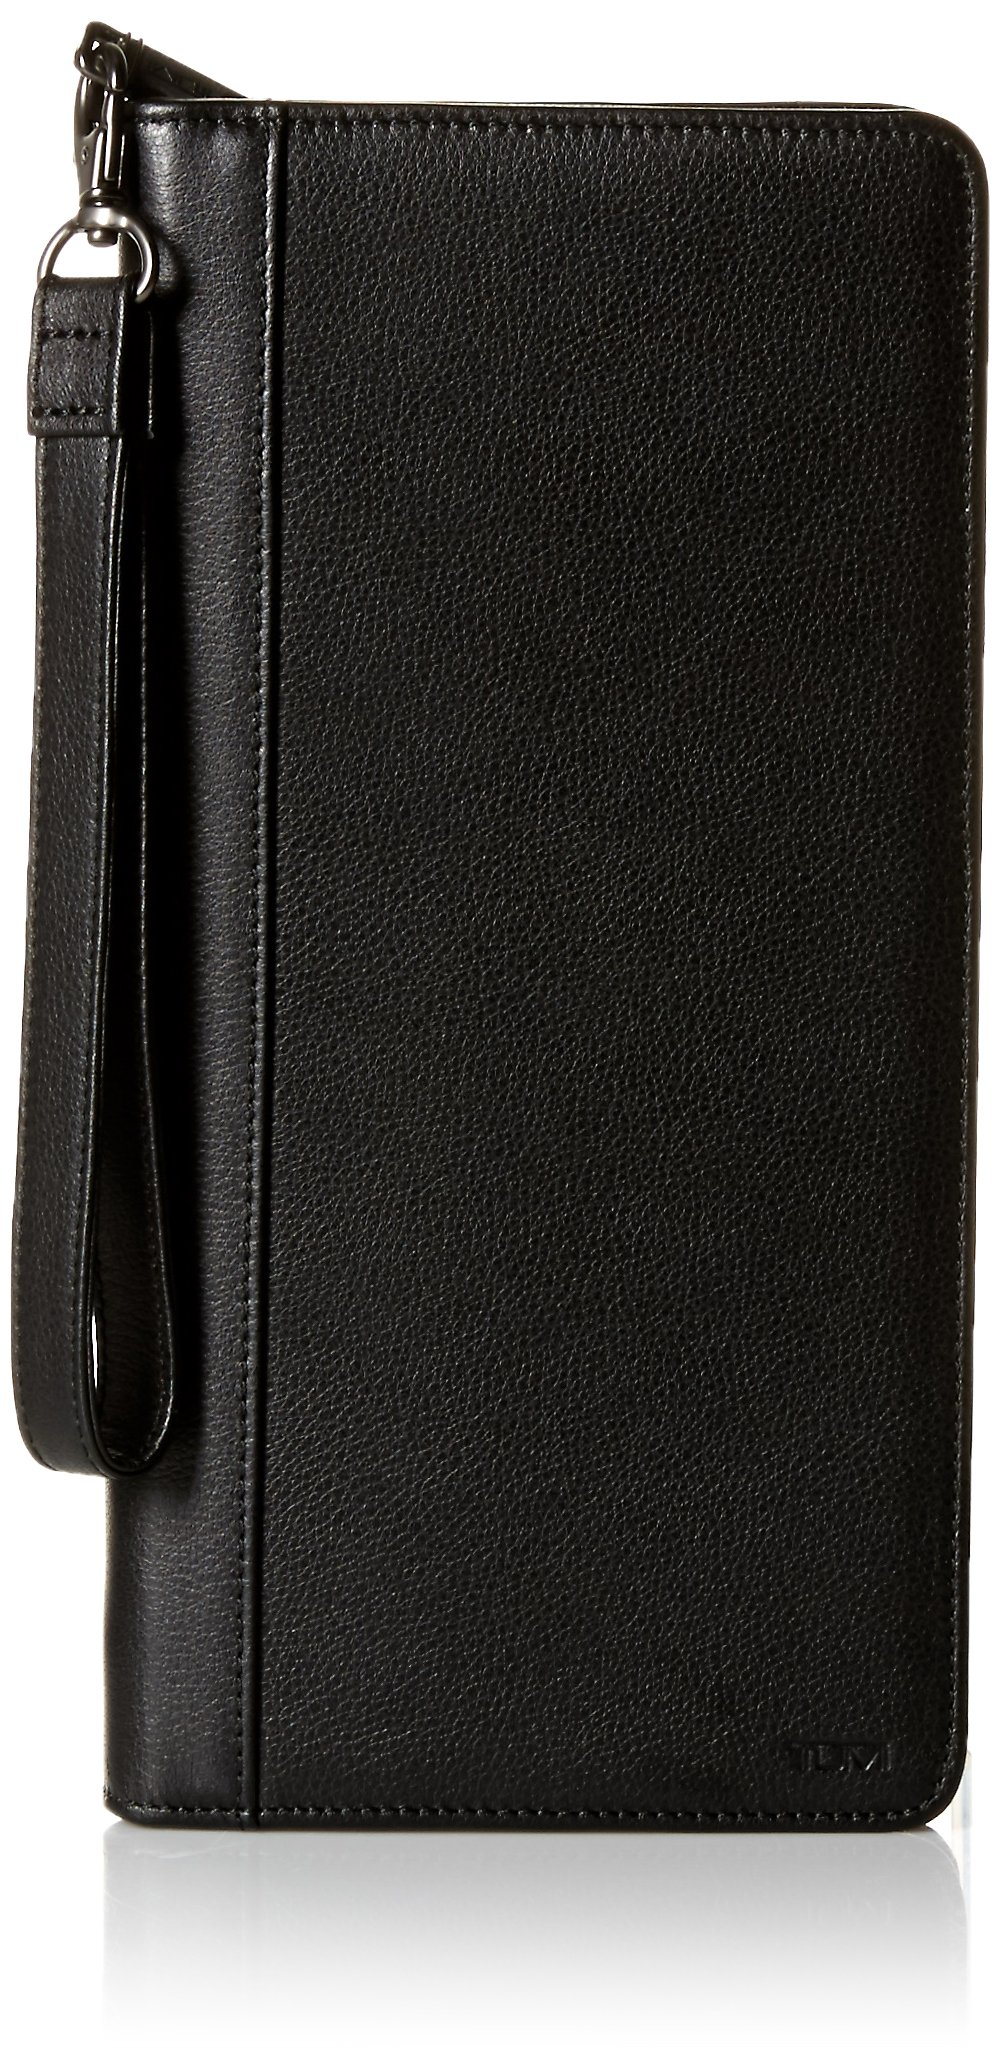 TUMI Men's Nassau Zip Travel Case Accessory, -black textured, one size